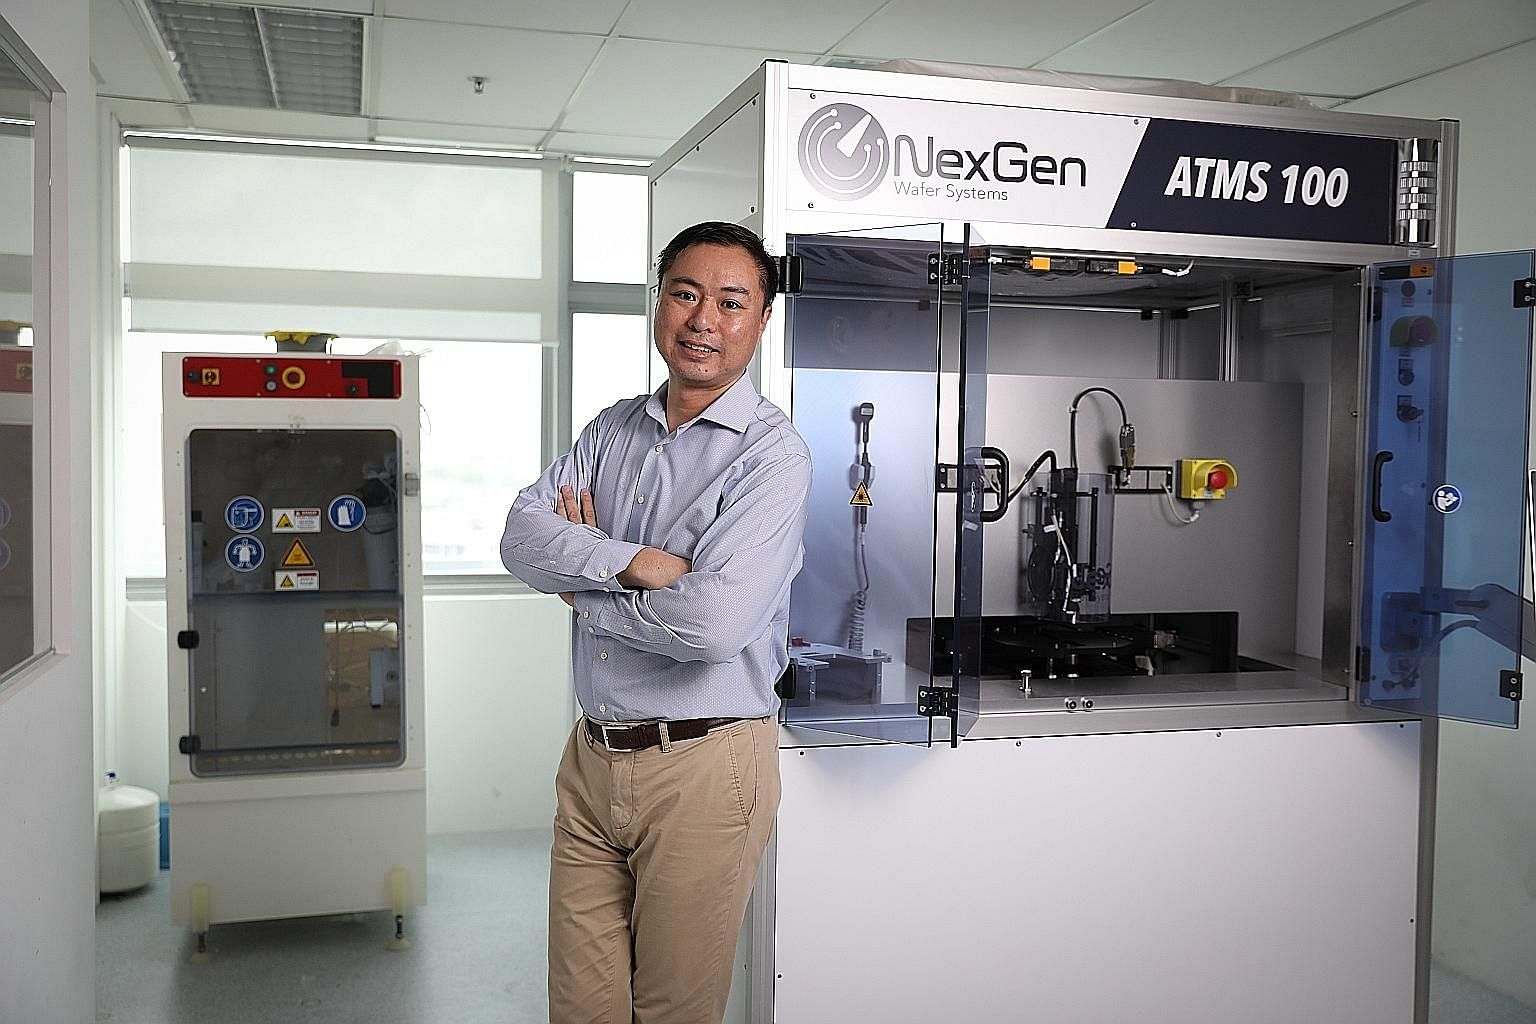 Chief executive Cheung Ting Kwan of NexGen Wafer Systems - a home-grown enterprise with 53 staff - forecasts double-digit revenue growth for his firm next year, and for the following three to five years.